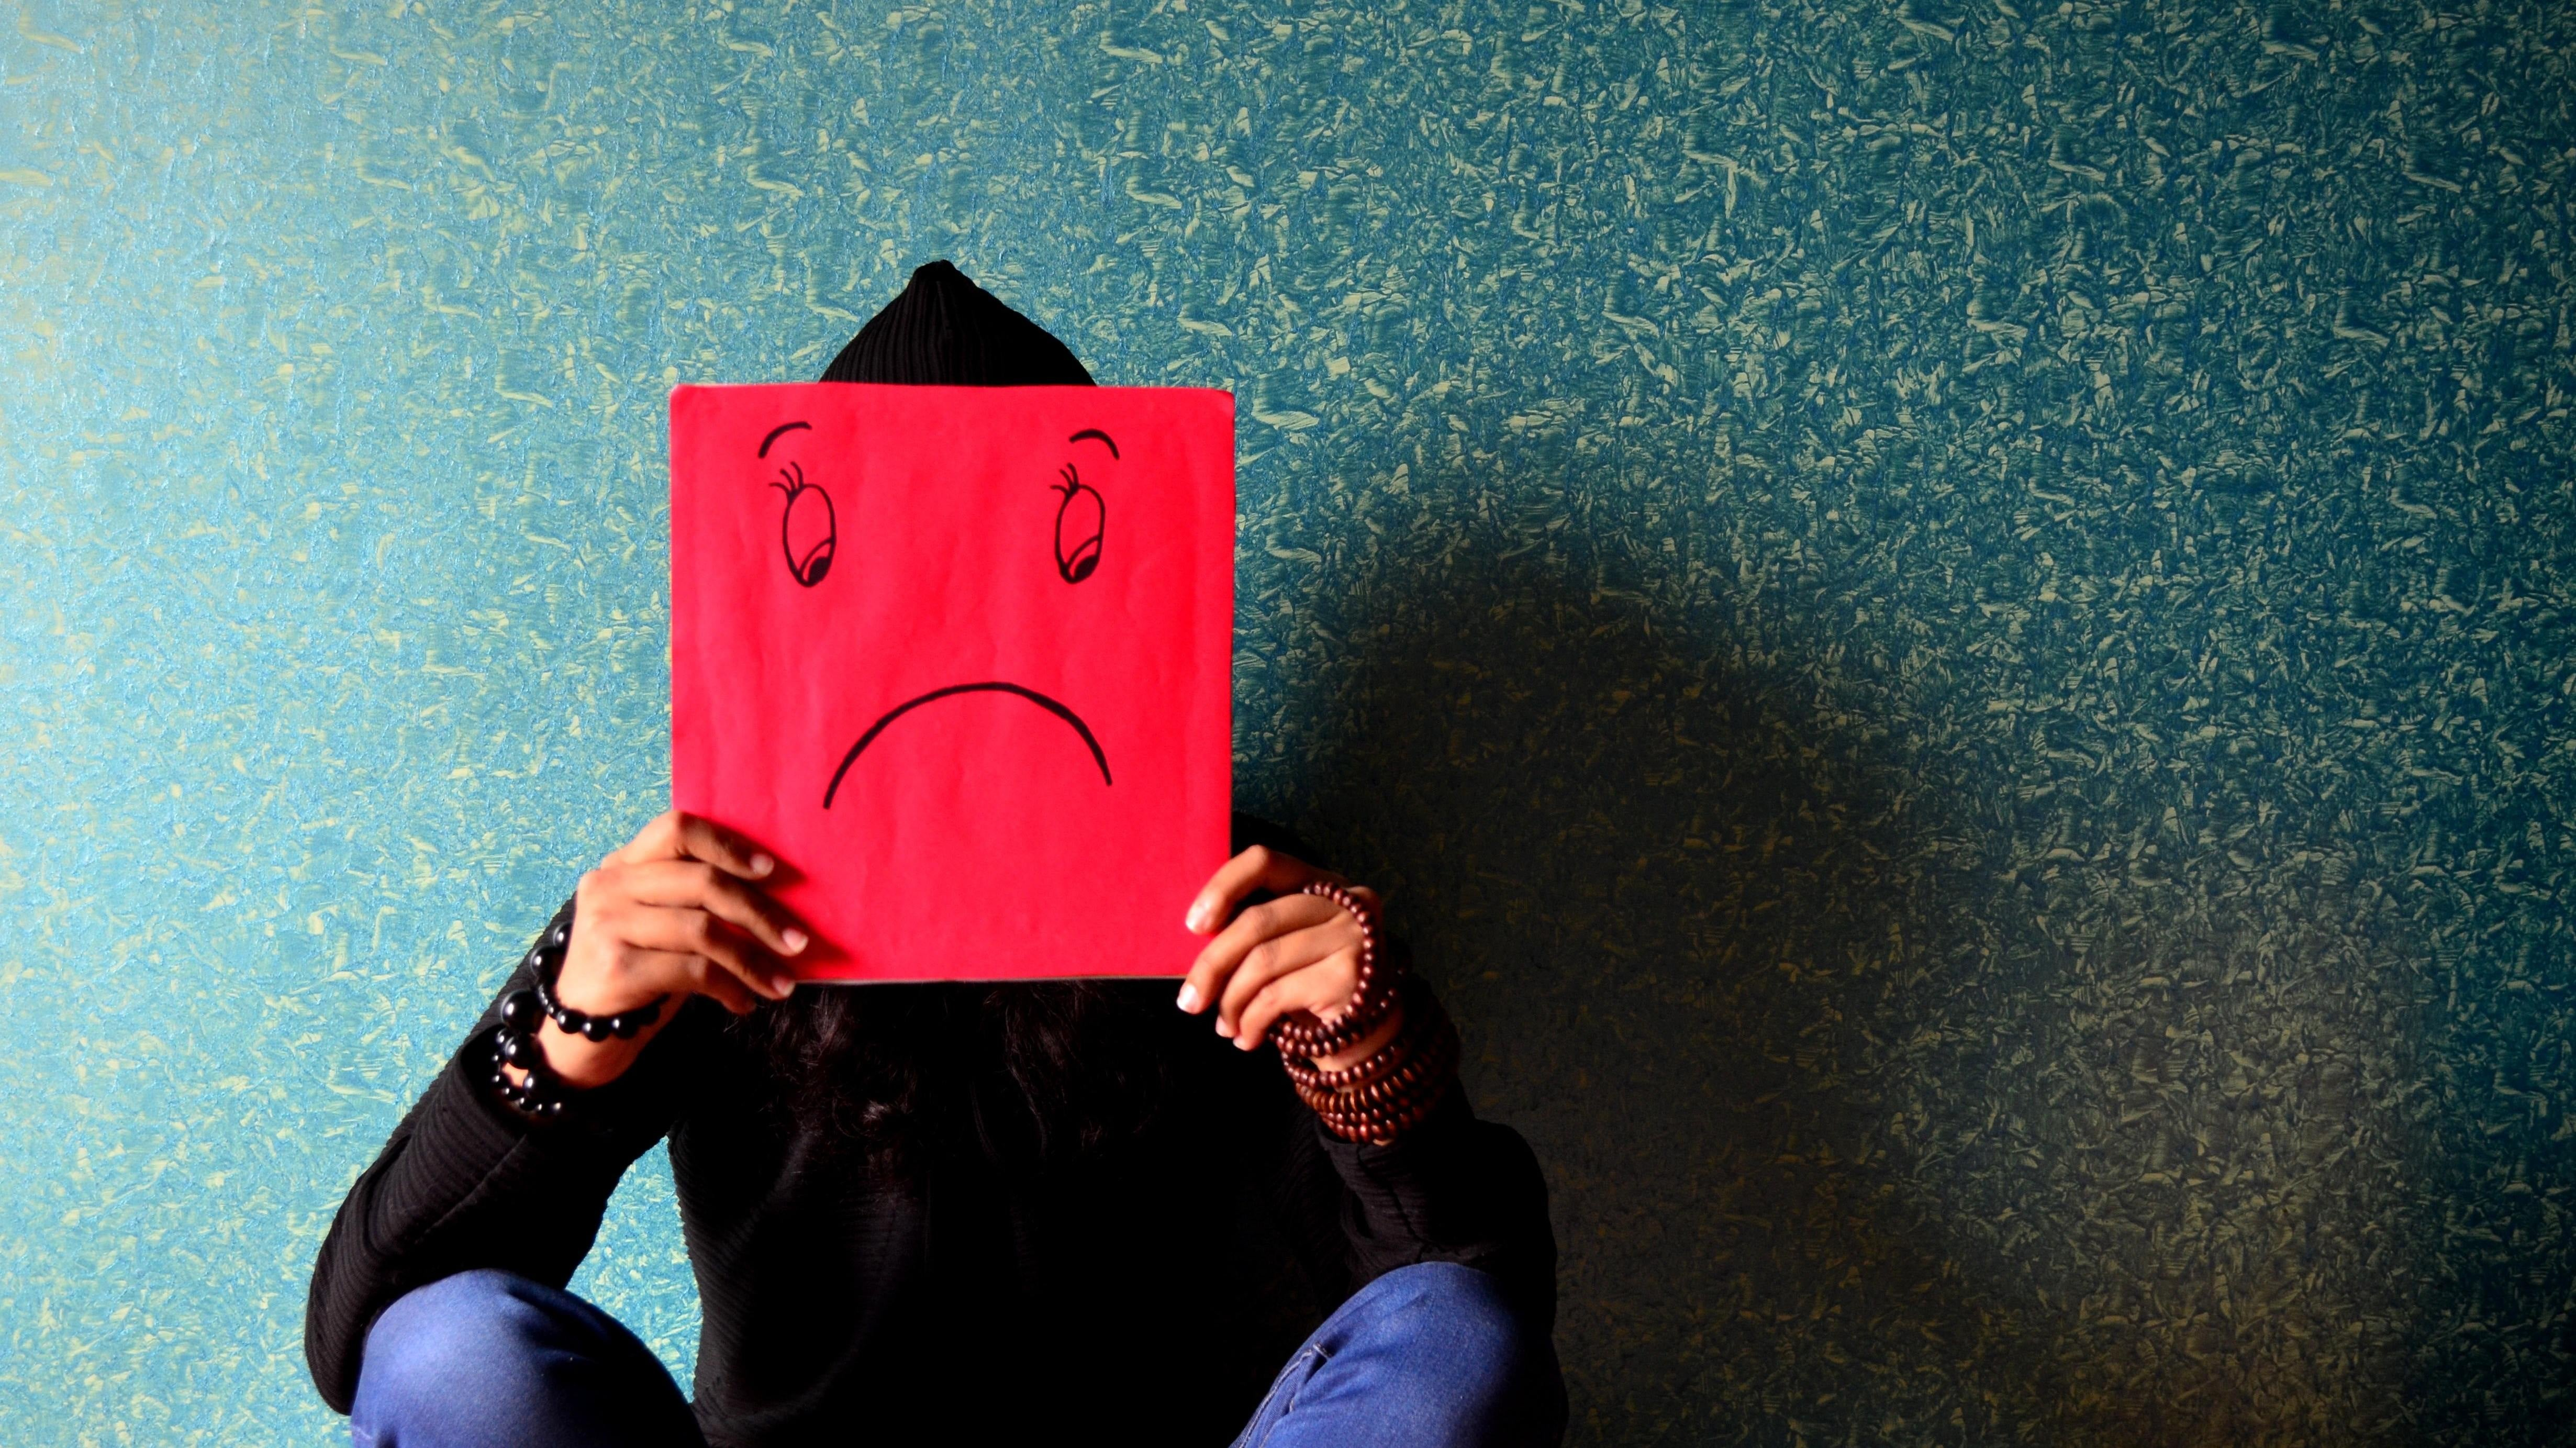 How To Emotionally Detach From Criticism